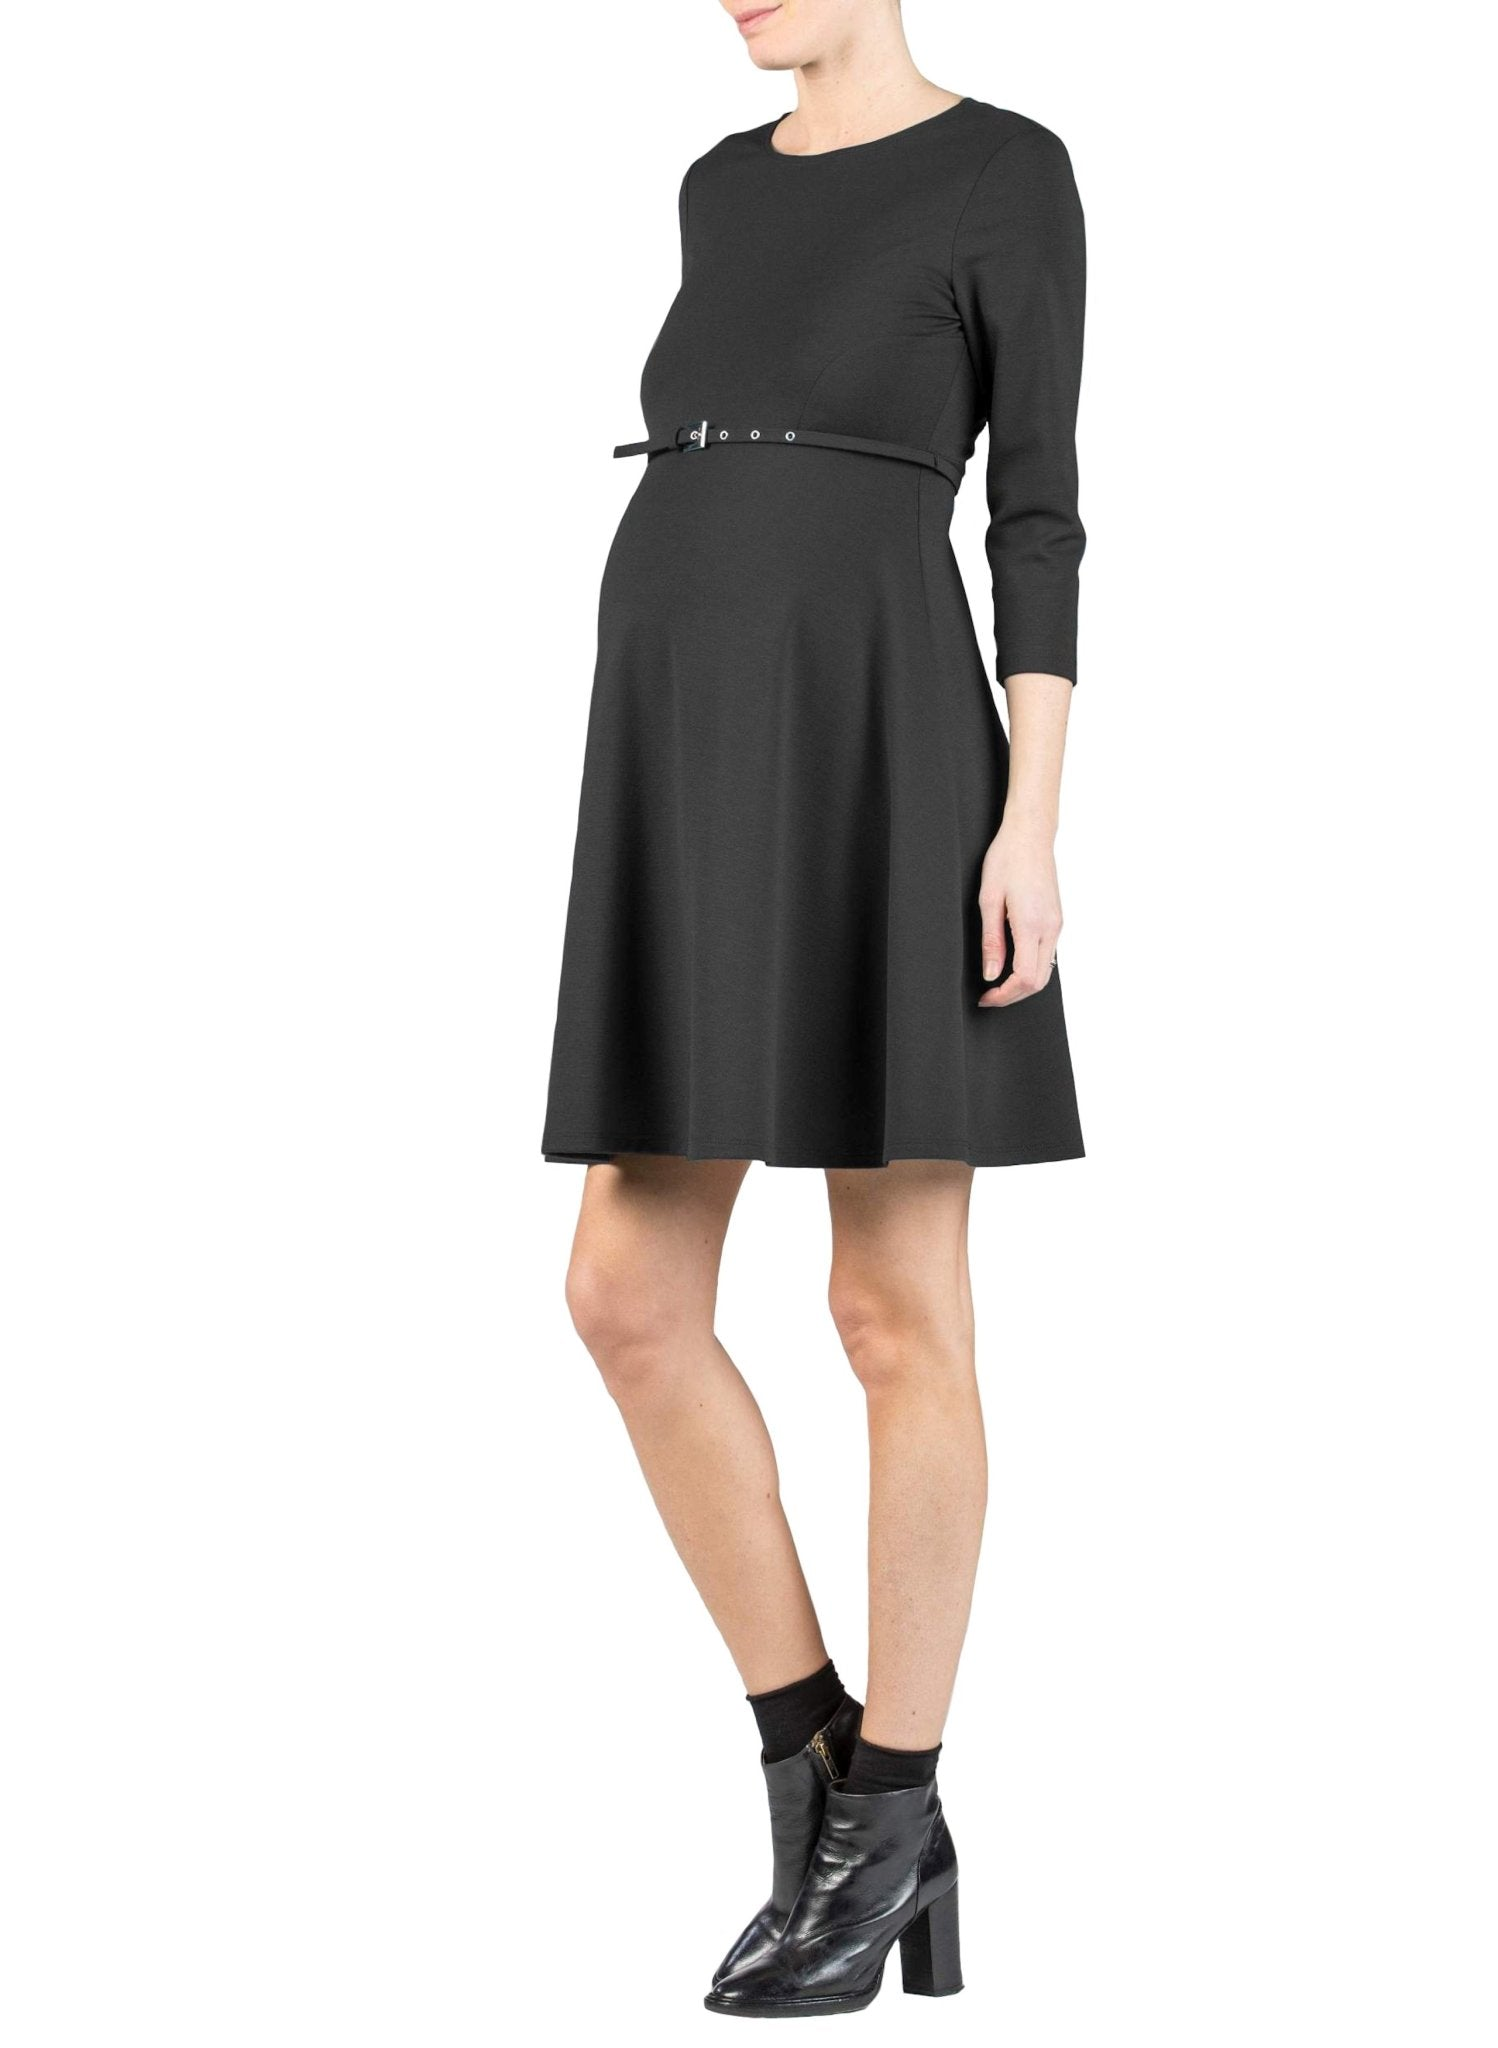 Flared Maternity Dress with Belt - Black - Mums and Bumps